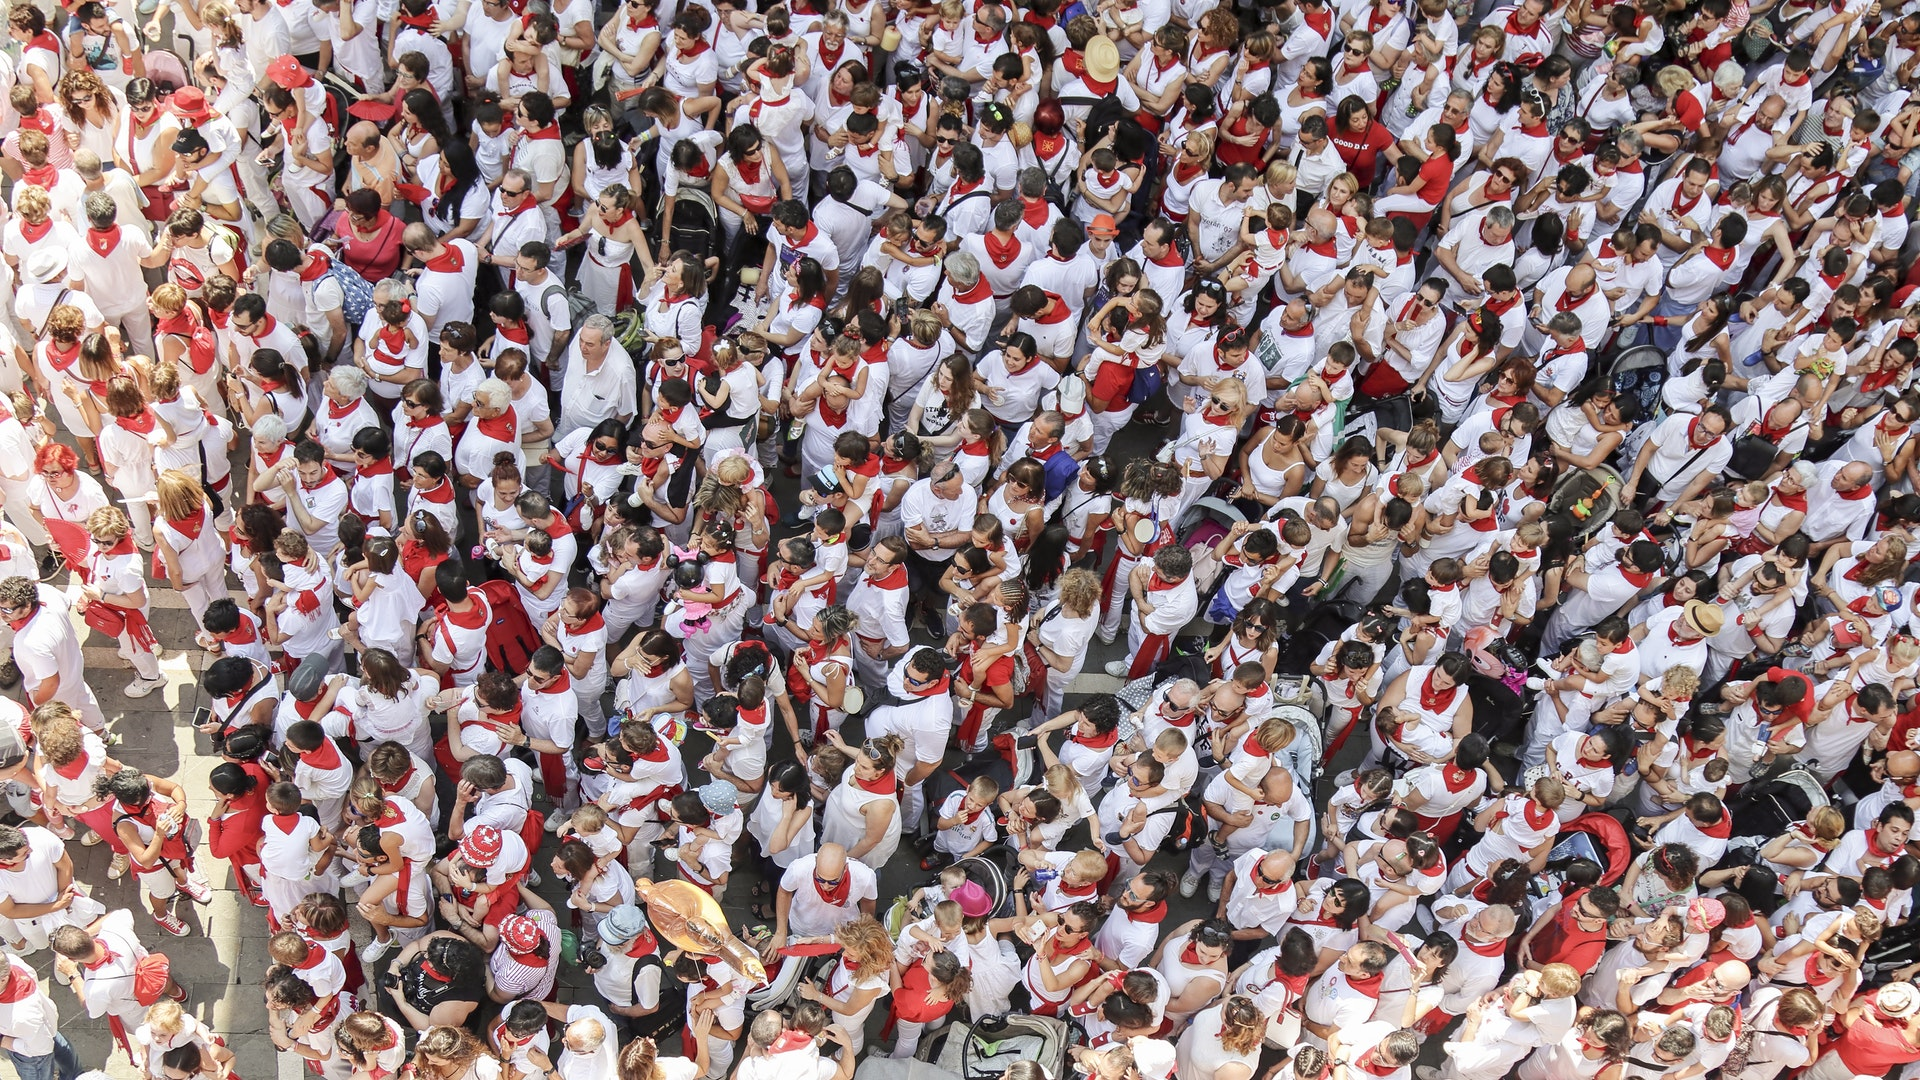 A bird's eye view of a crowd of people dressed in red and white